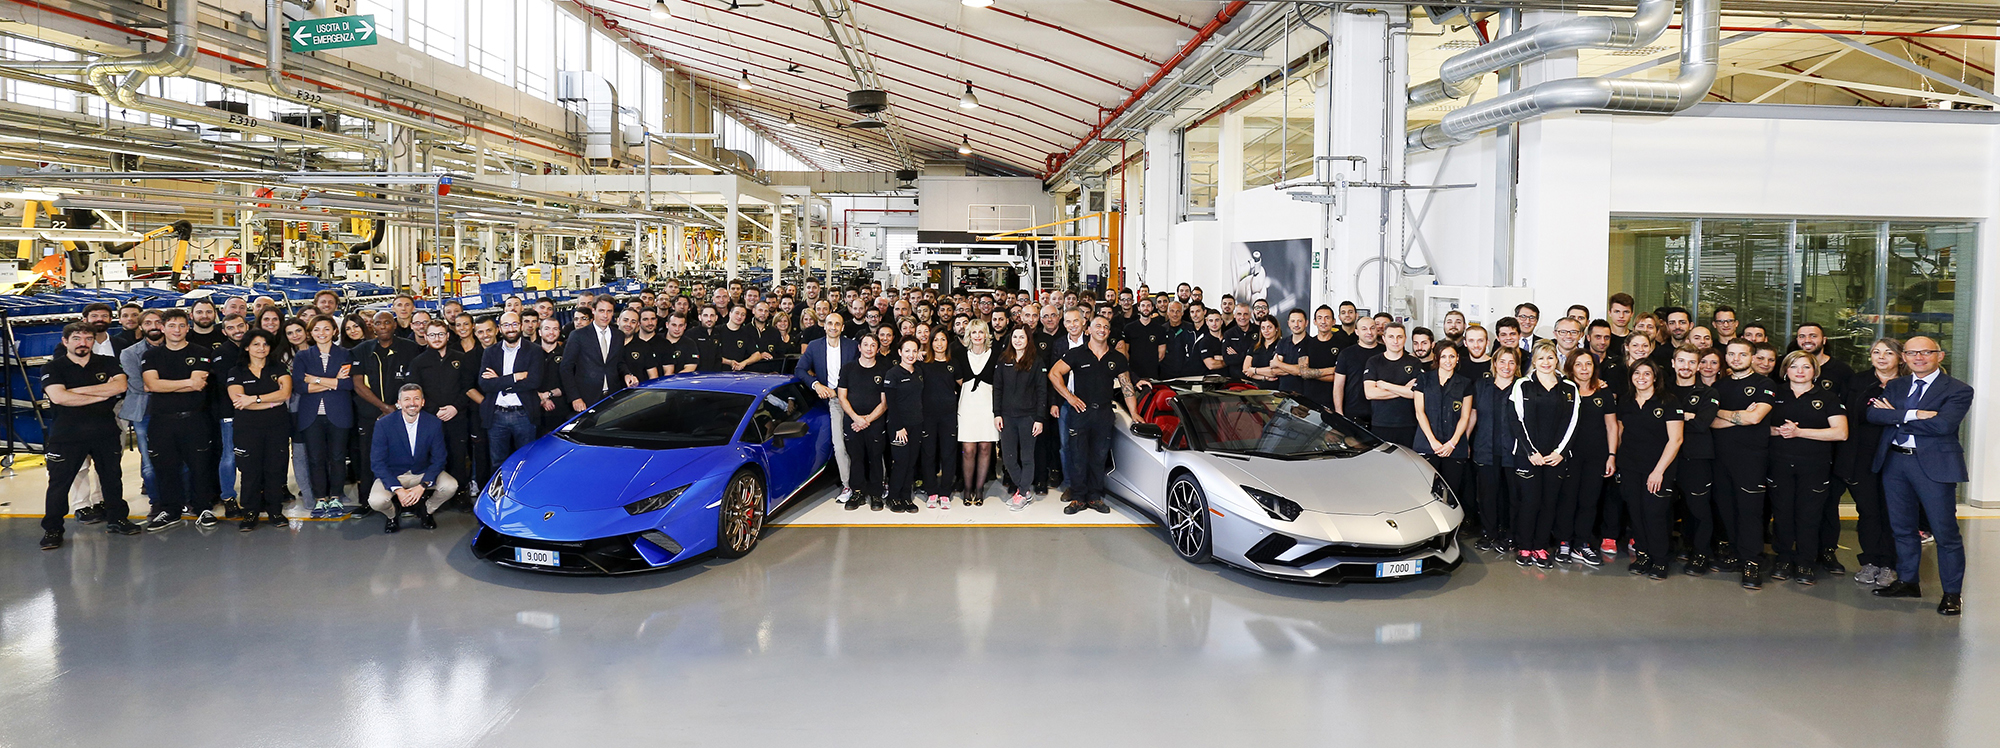 Lamborghini Produces 7,000th Aventador and 9,000th Huracan 5